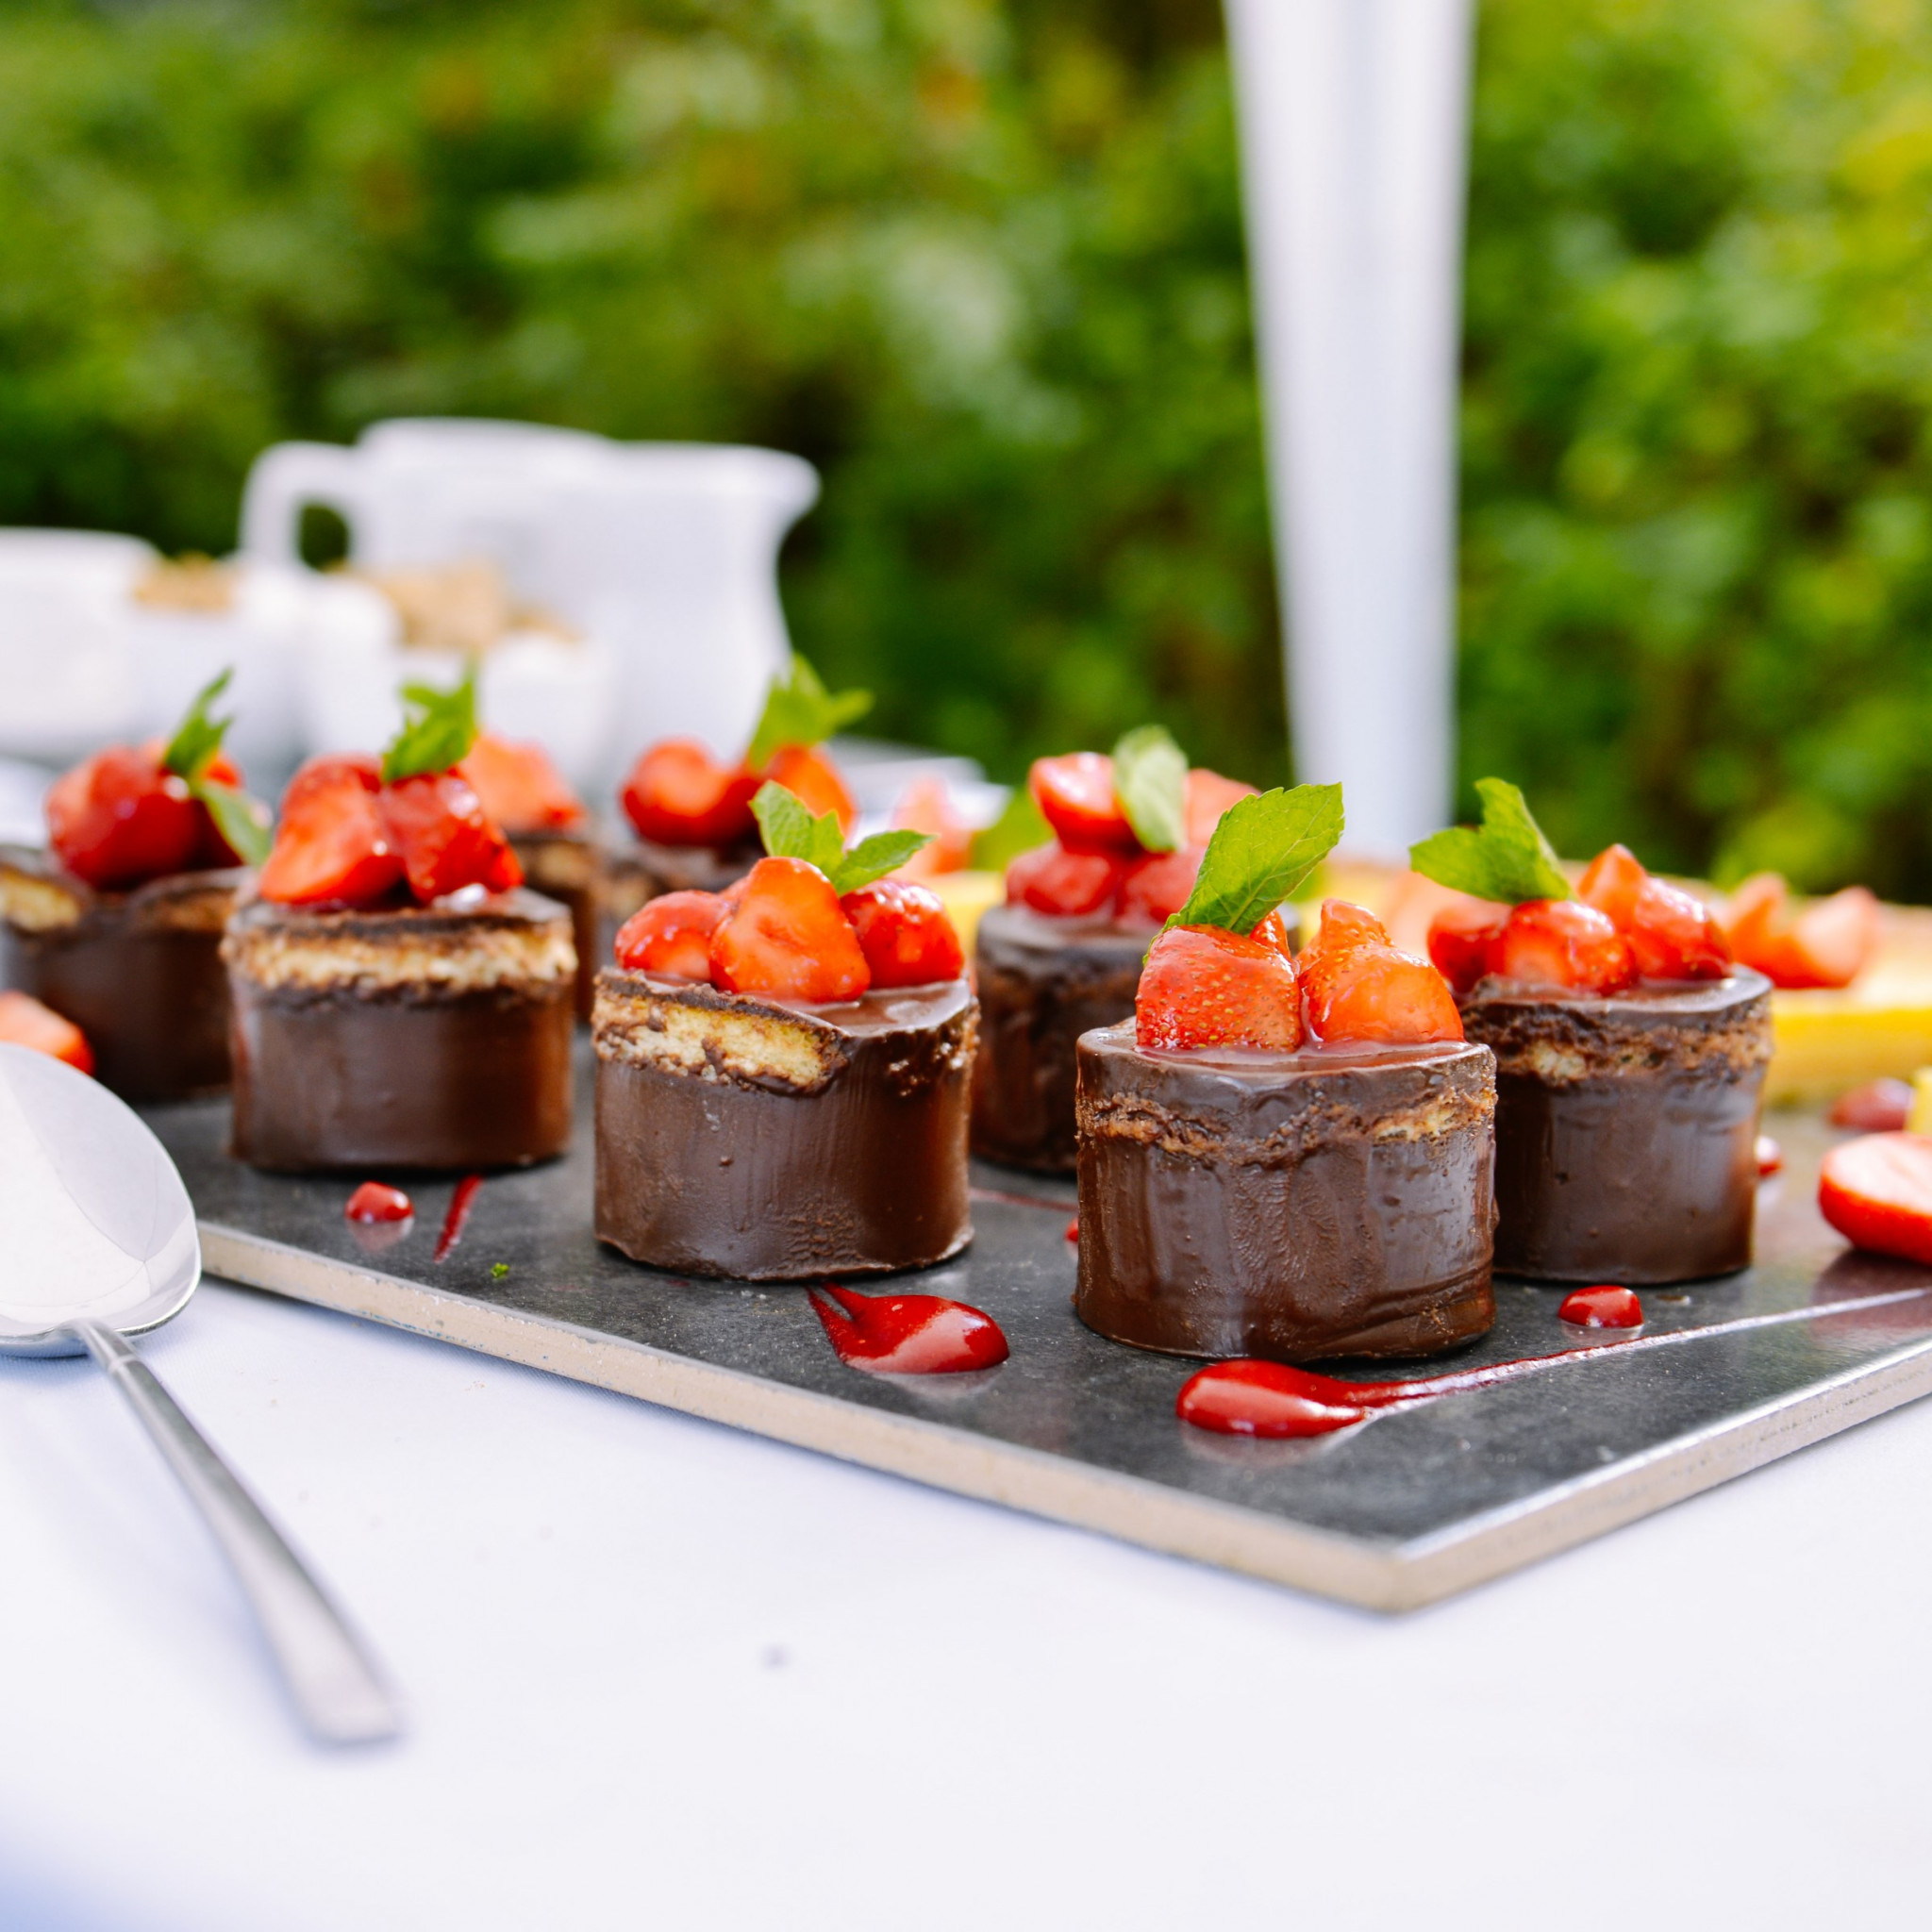 Chocolate cakes with strawberries wallpaper 2048x2048